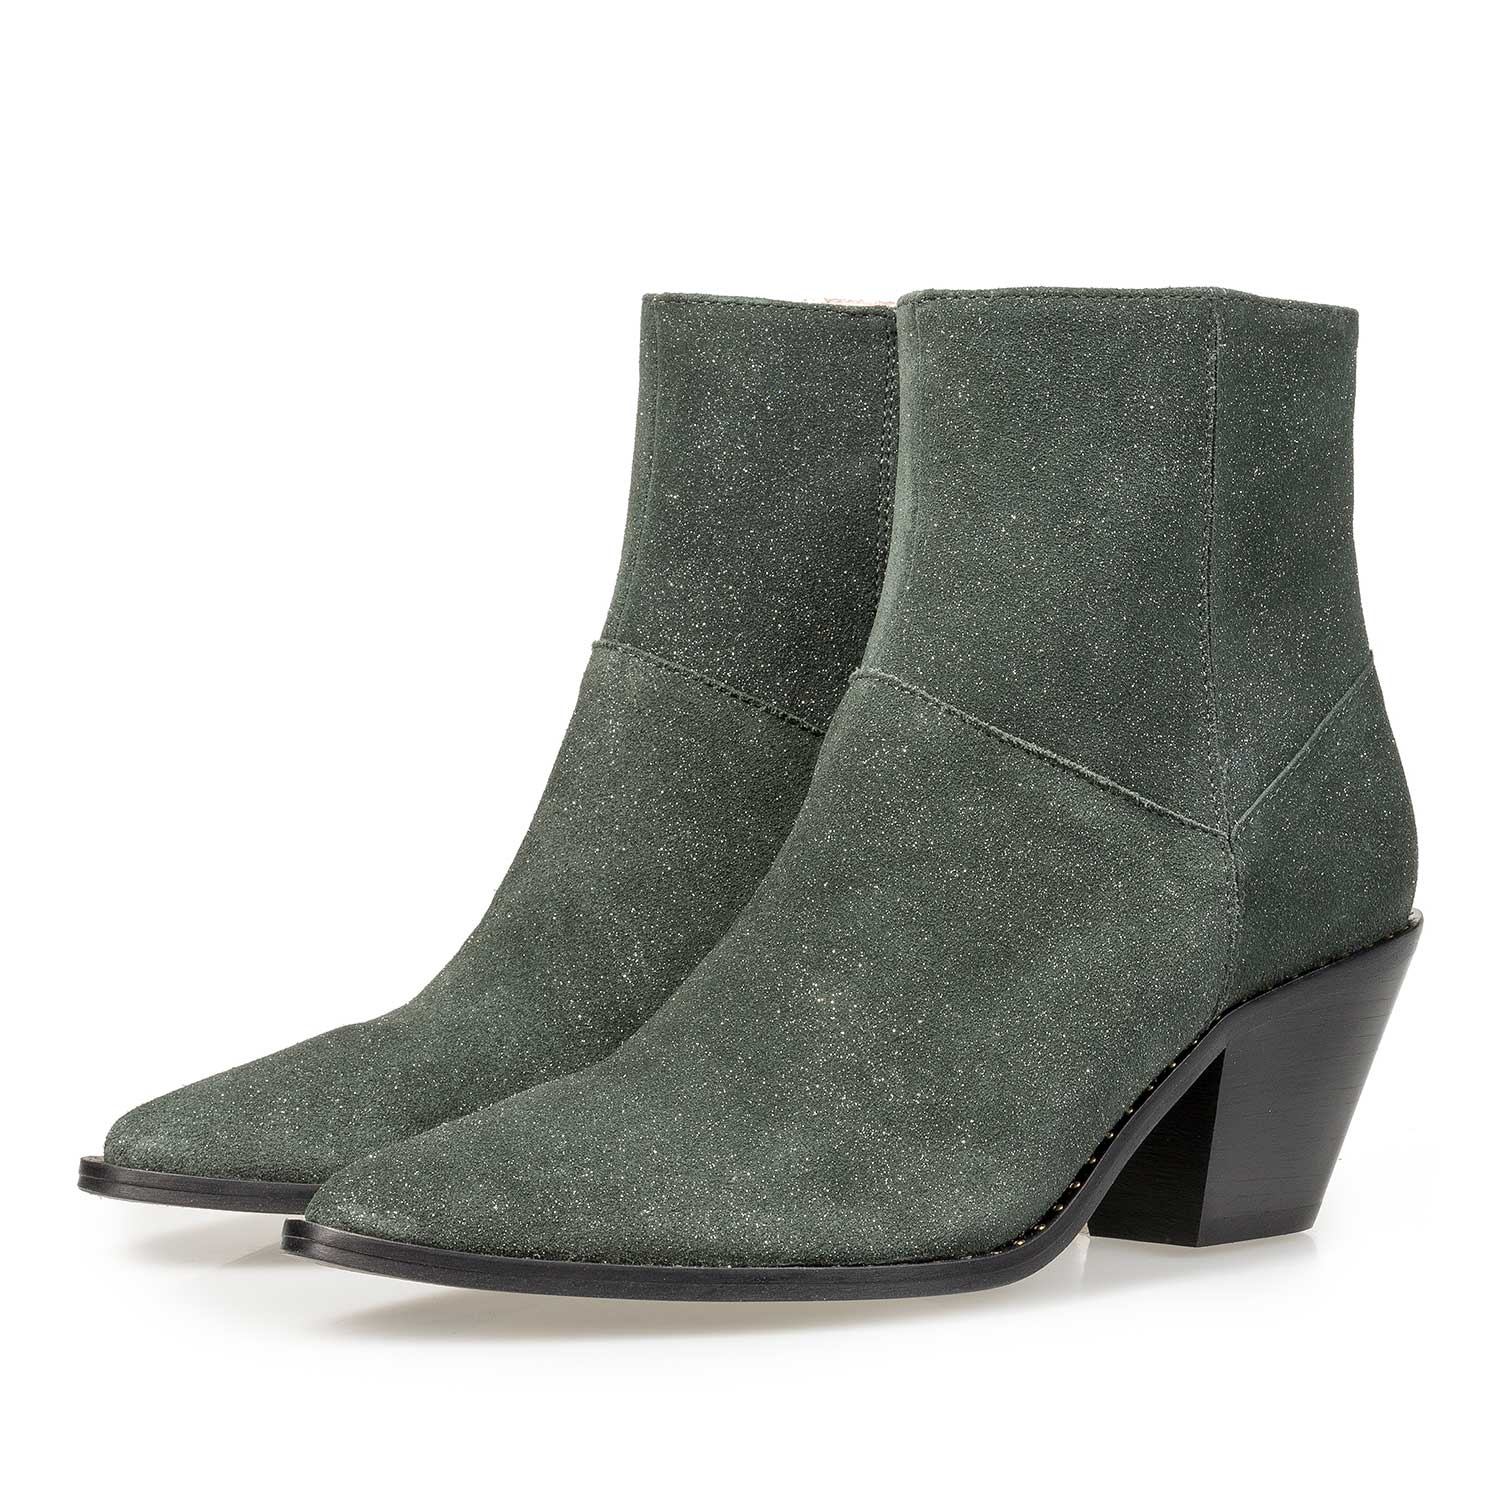 85617/01 - Olive green Western boot with glitter effect